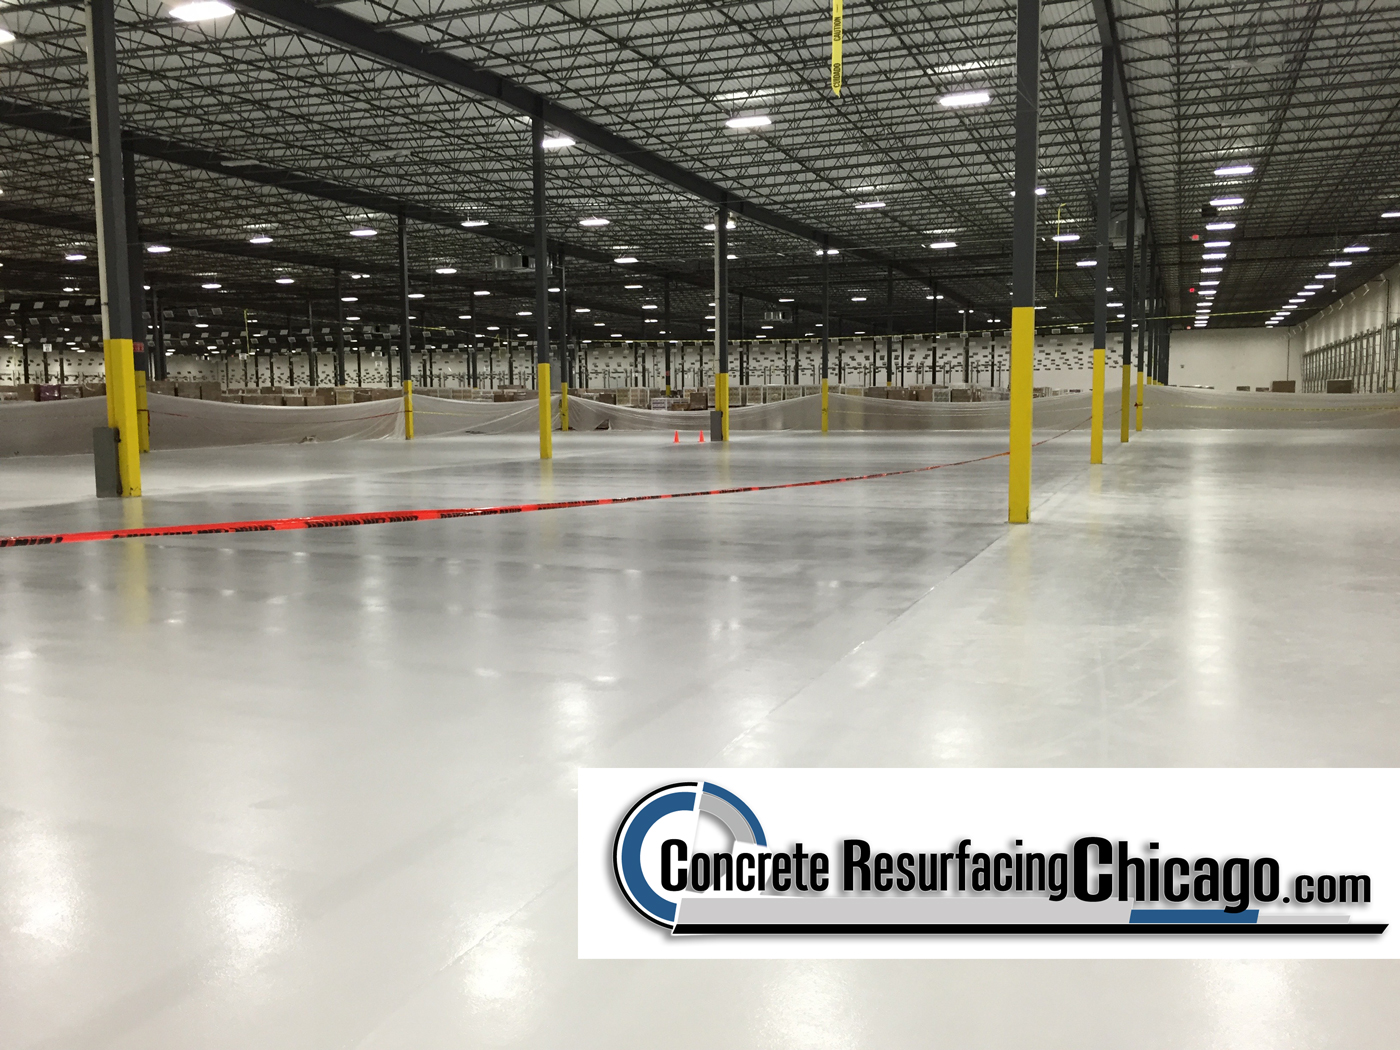 630-448-0317 -Industrial Commercial Floors Concrete Resurfacing Solutions Serving Chicagoland